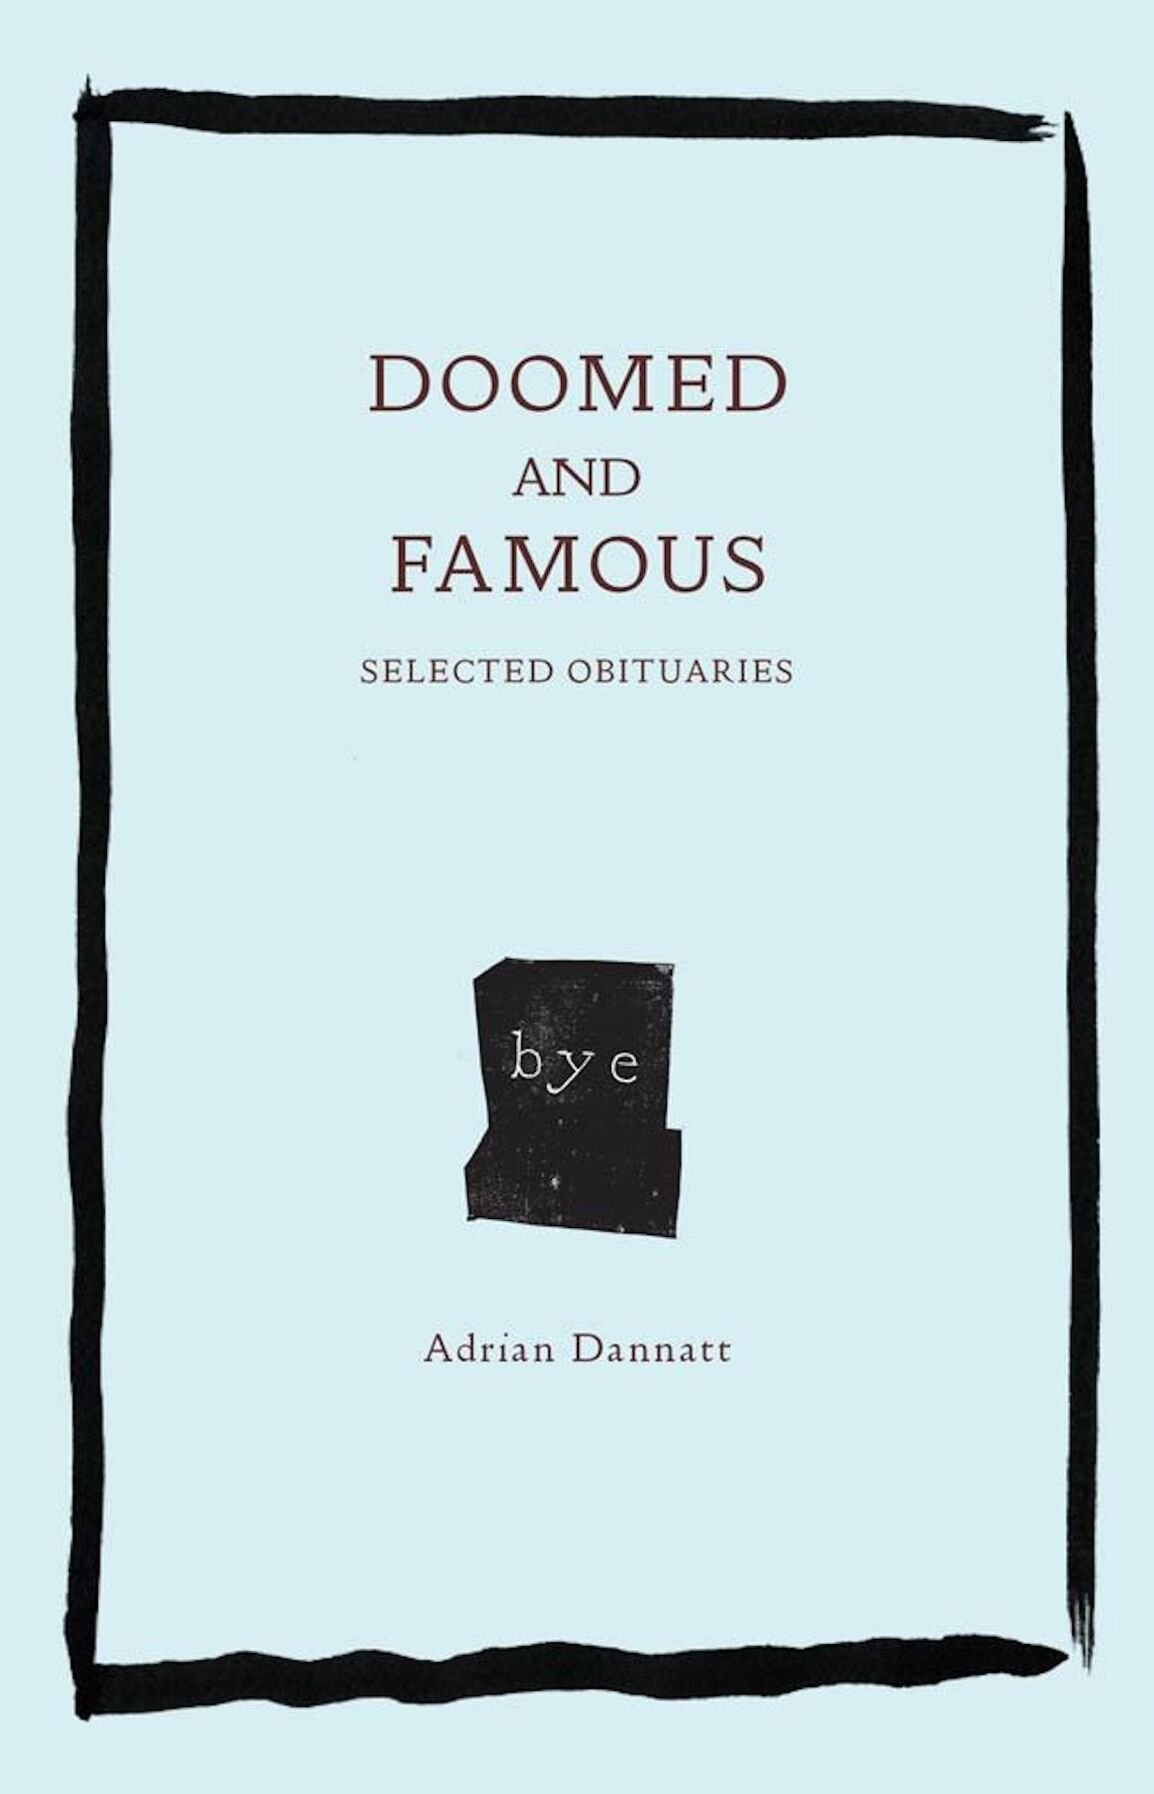 Doomed and Famous.jpg